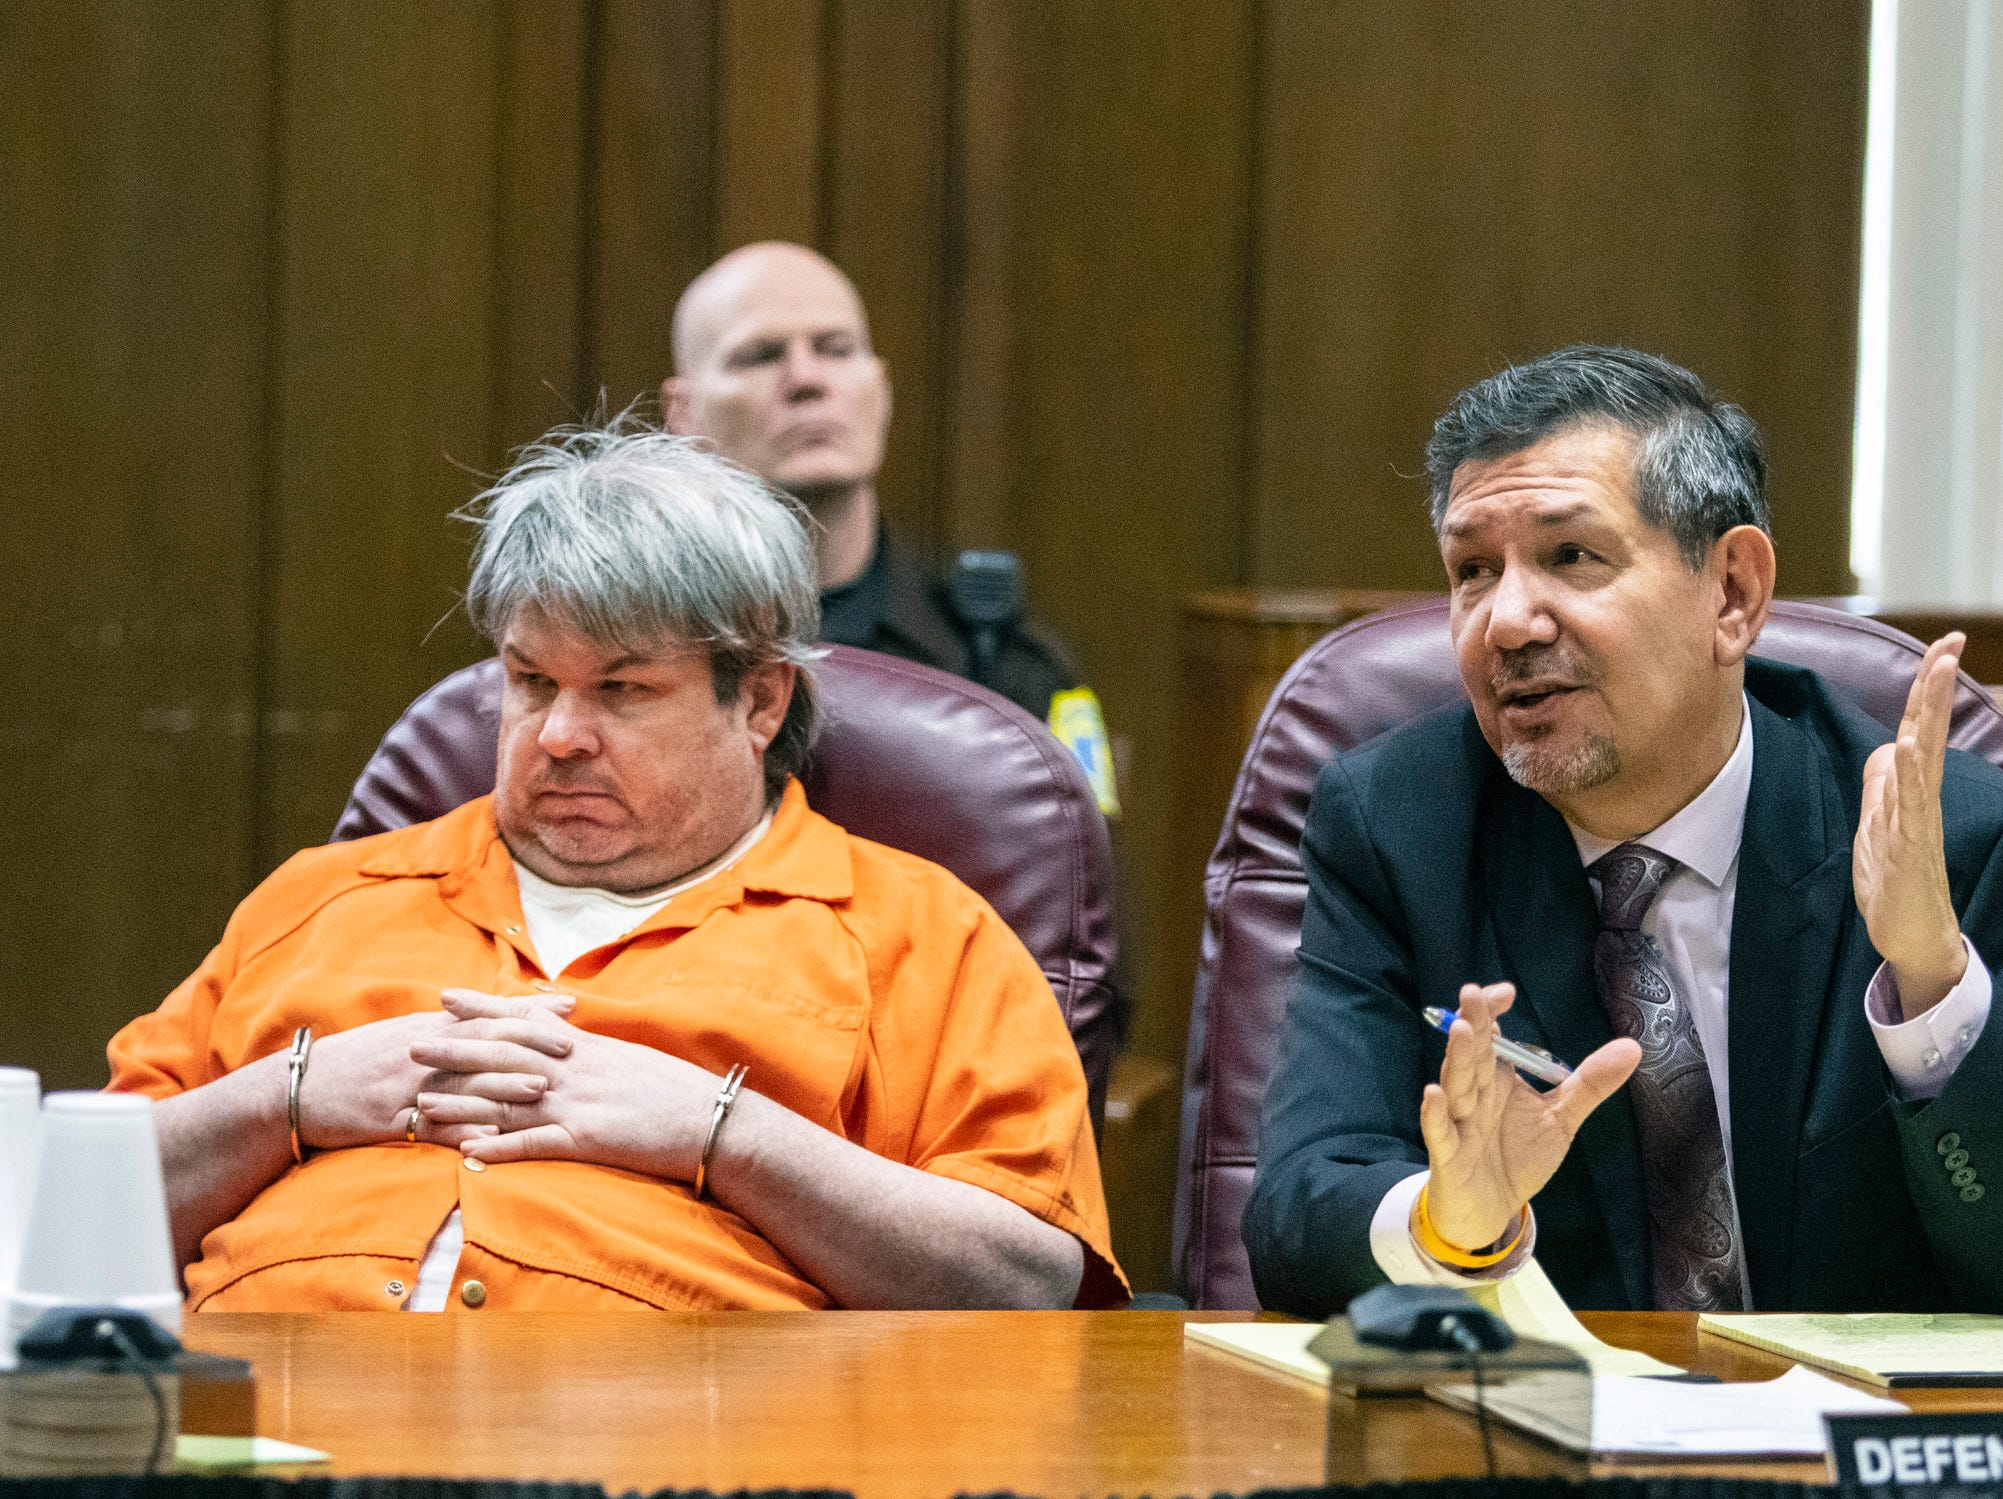 Defense attorney Eusebio Solis objects to a comment made by shooting survivor, Tiana Carruthers, during her victim impact statement before Jason Dalton, left, was sentenced to life in prison without the possibility of parole on six counts of murder and several other charges at the Kalamazoo County Courthouse in Kalamazoo on Tuesday, Feb. 5, 2019.